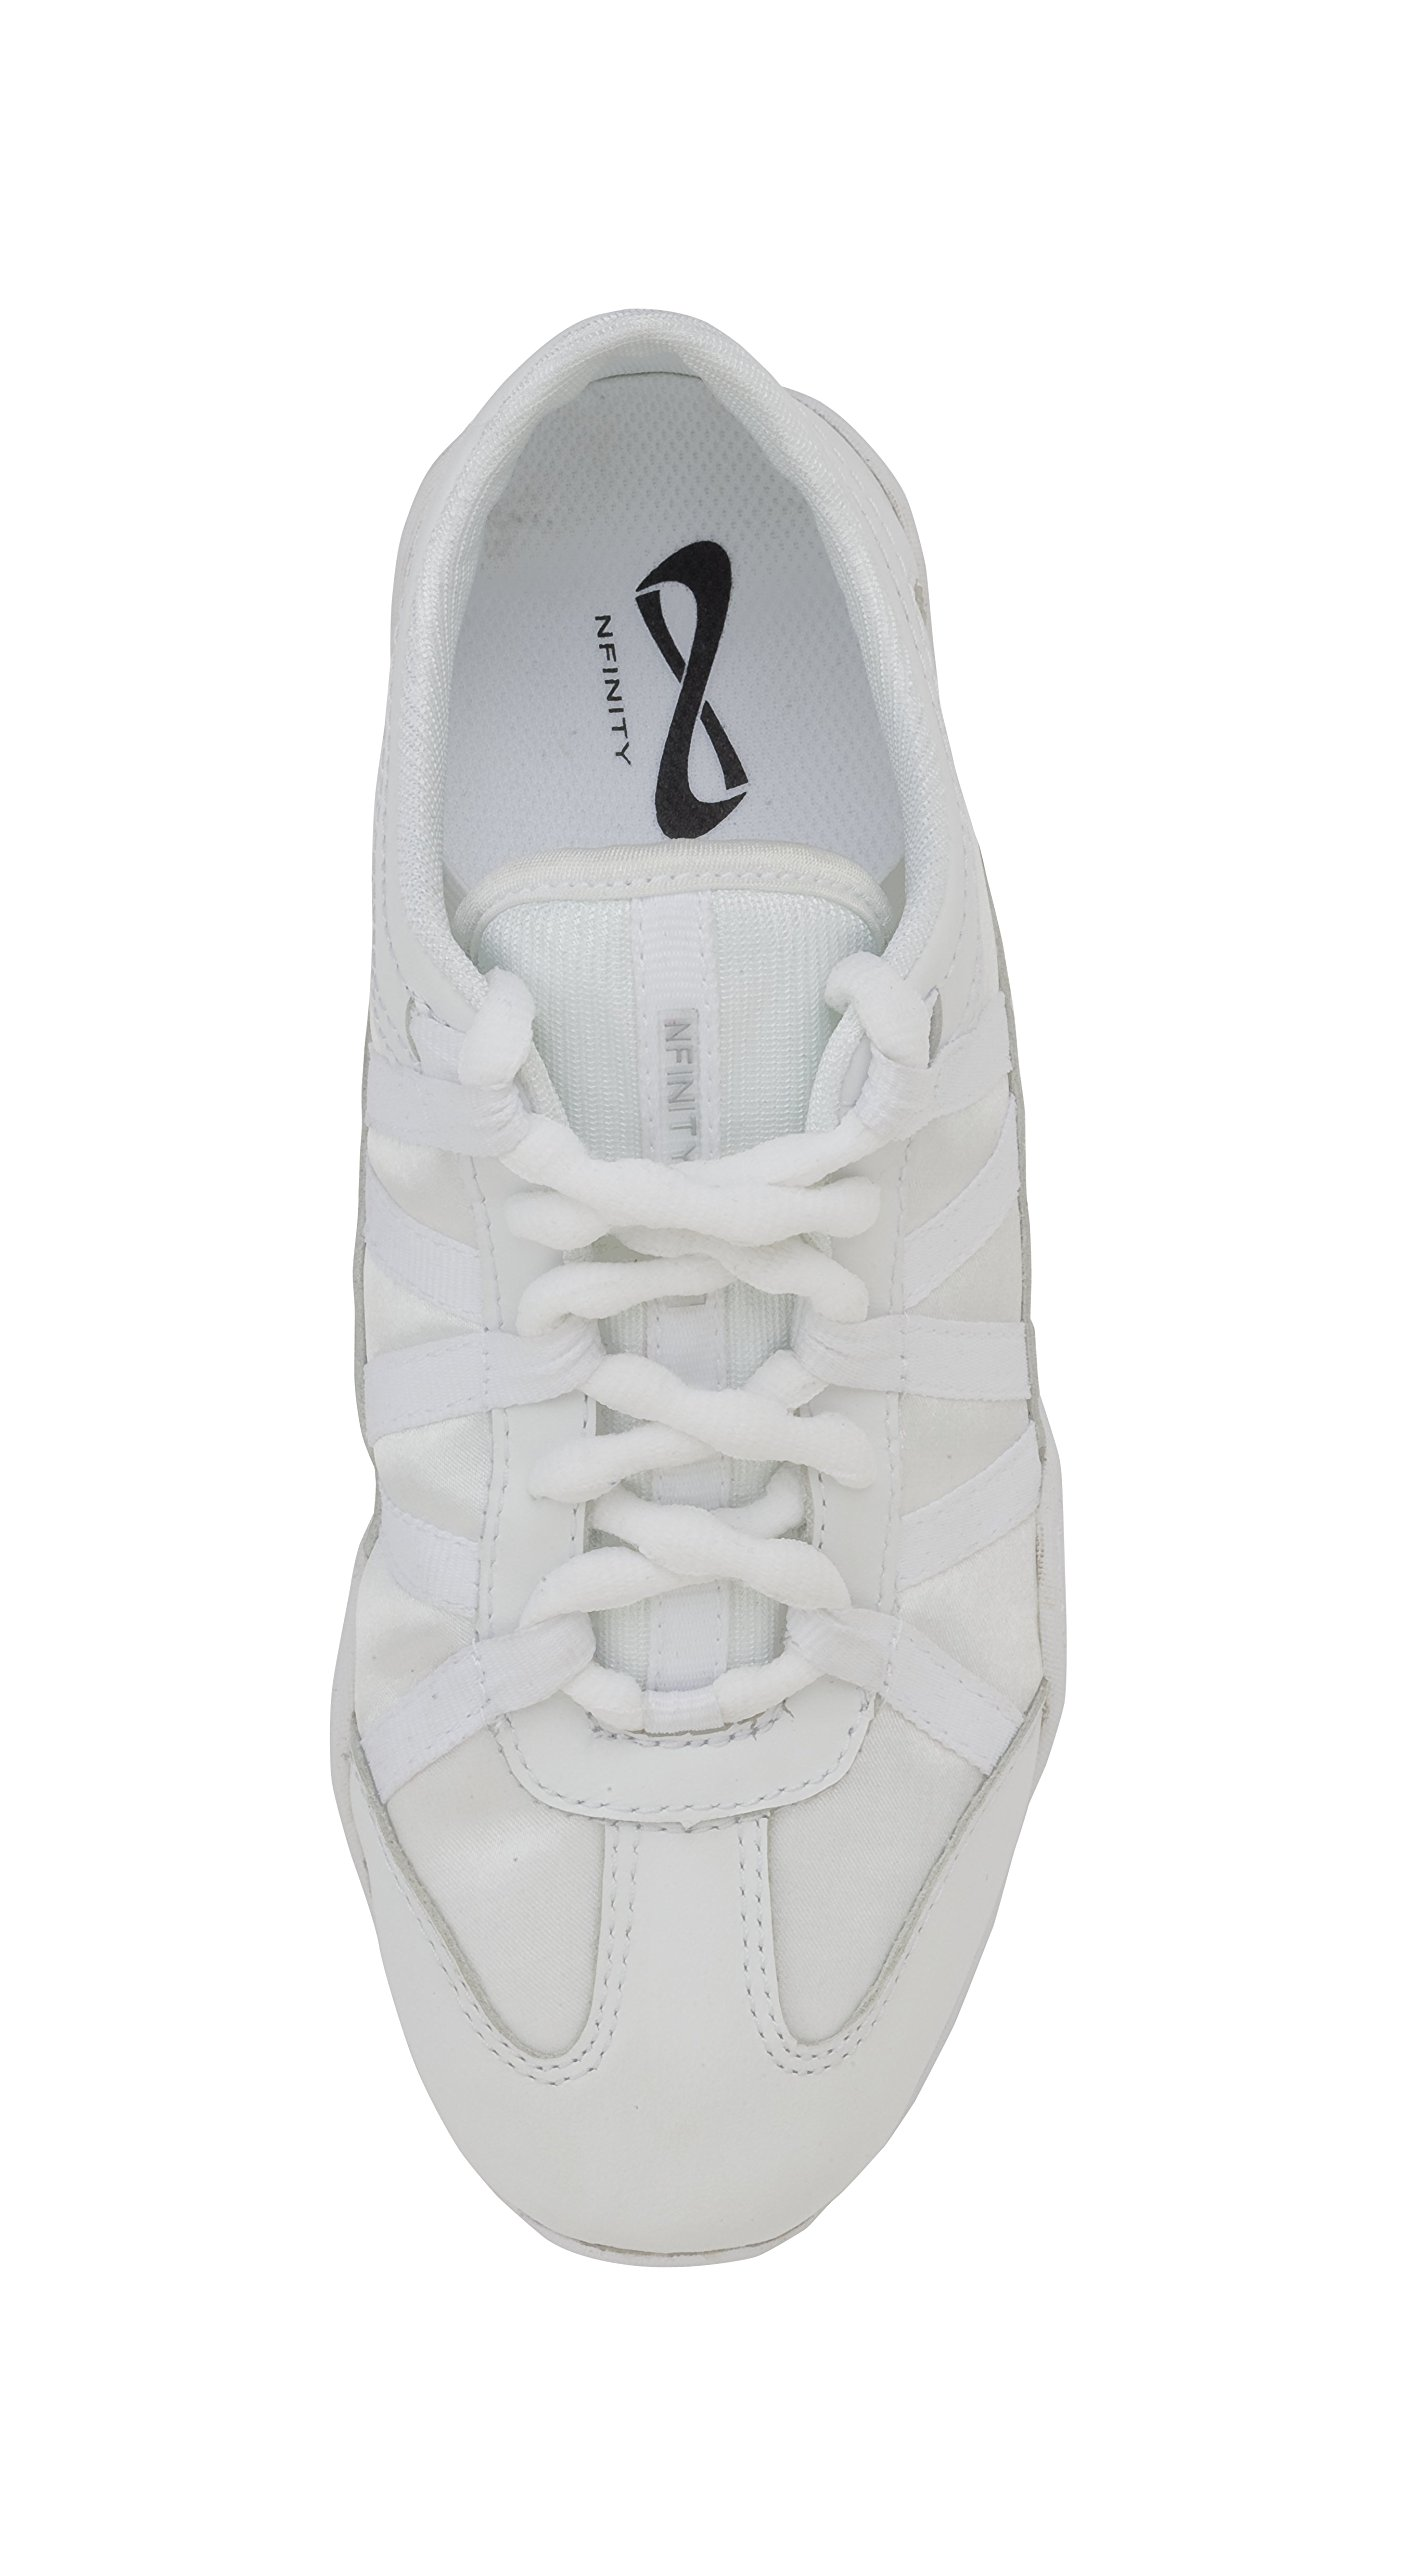 Nfinity Youth Evolution Cheer Shoes, White, Y13 by Nfinity (Image #5)